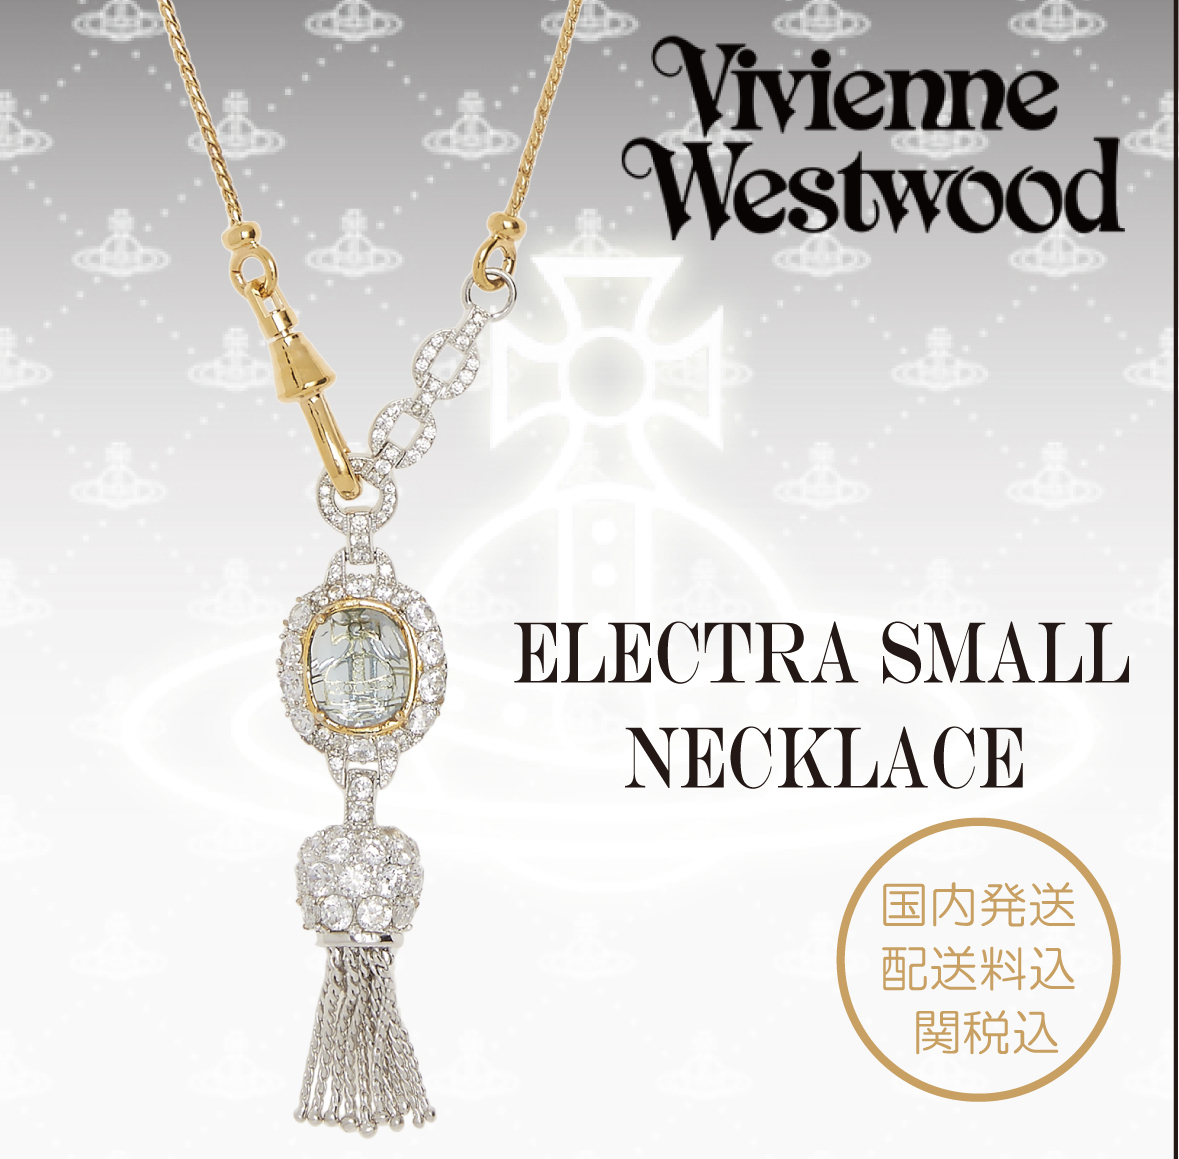 Vivienne Westwood★ELECTRA SMALL ネックレス★クーポン付 ♪